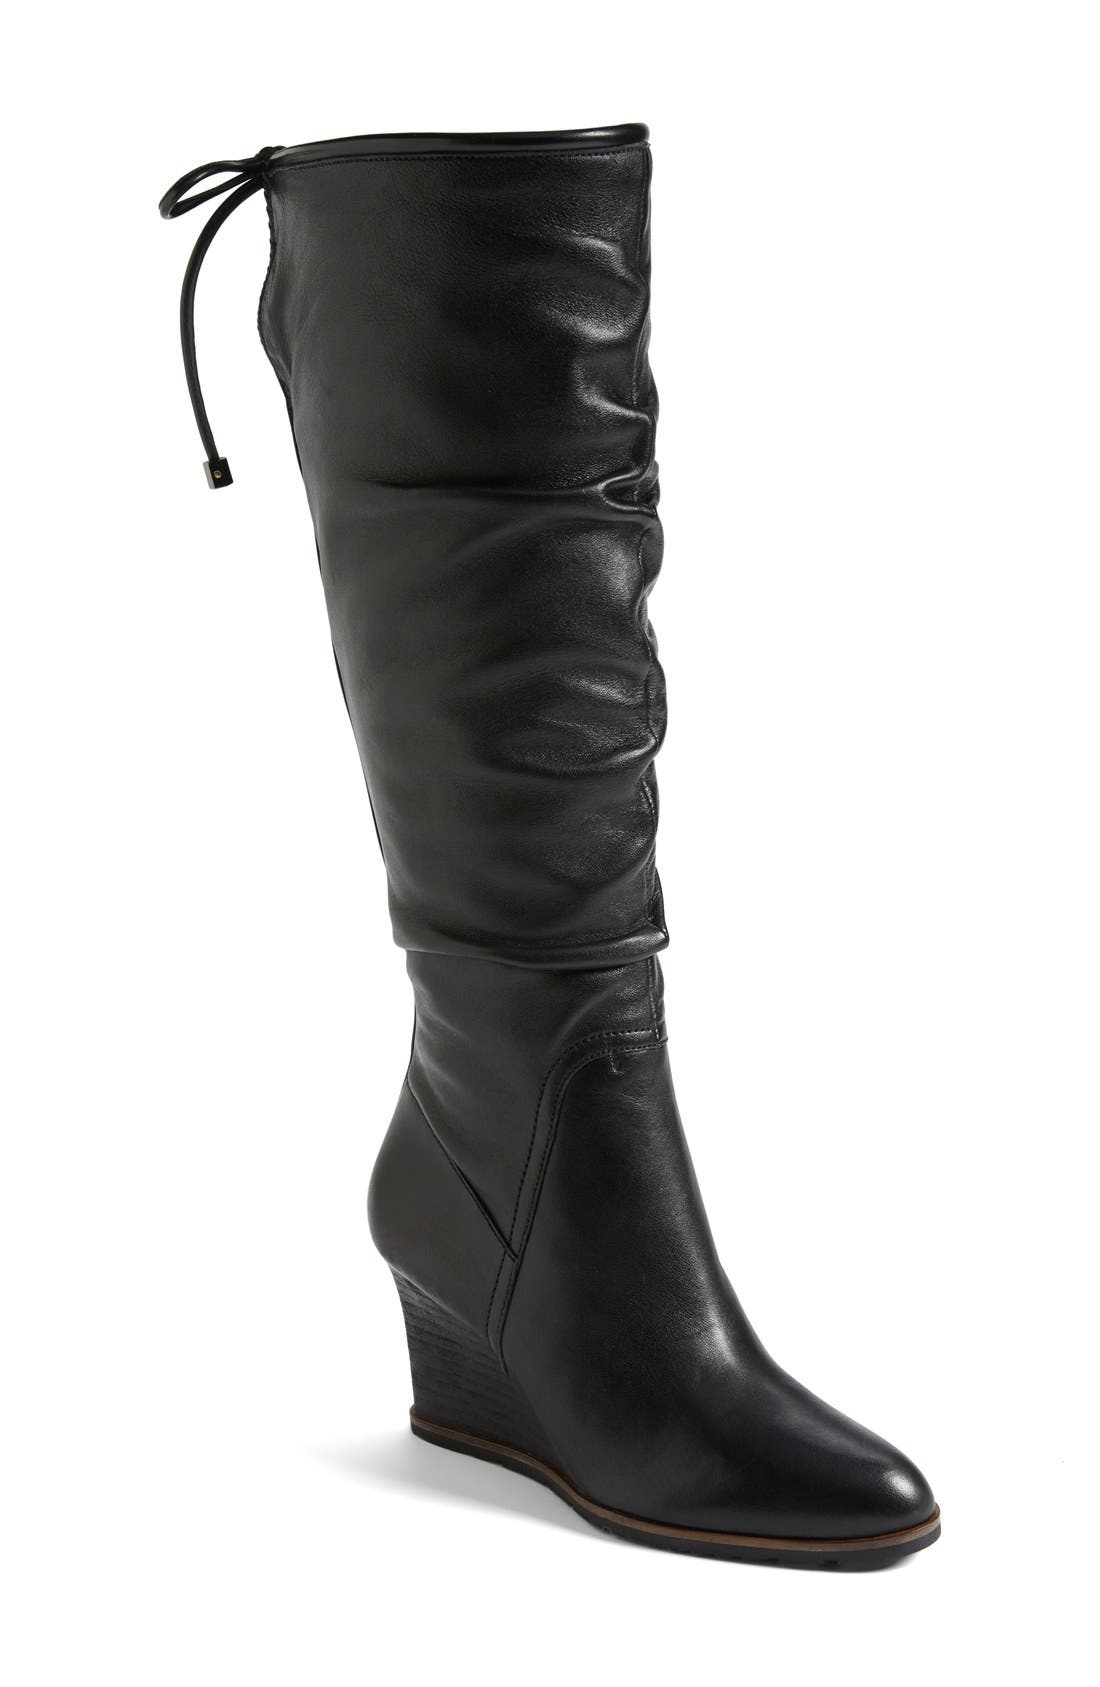 FRANCO SARTO 'Dominion' Wedge Boot, Main, color, 001